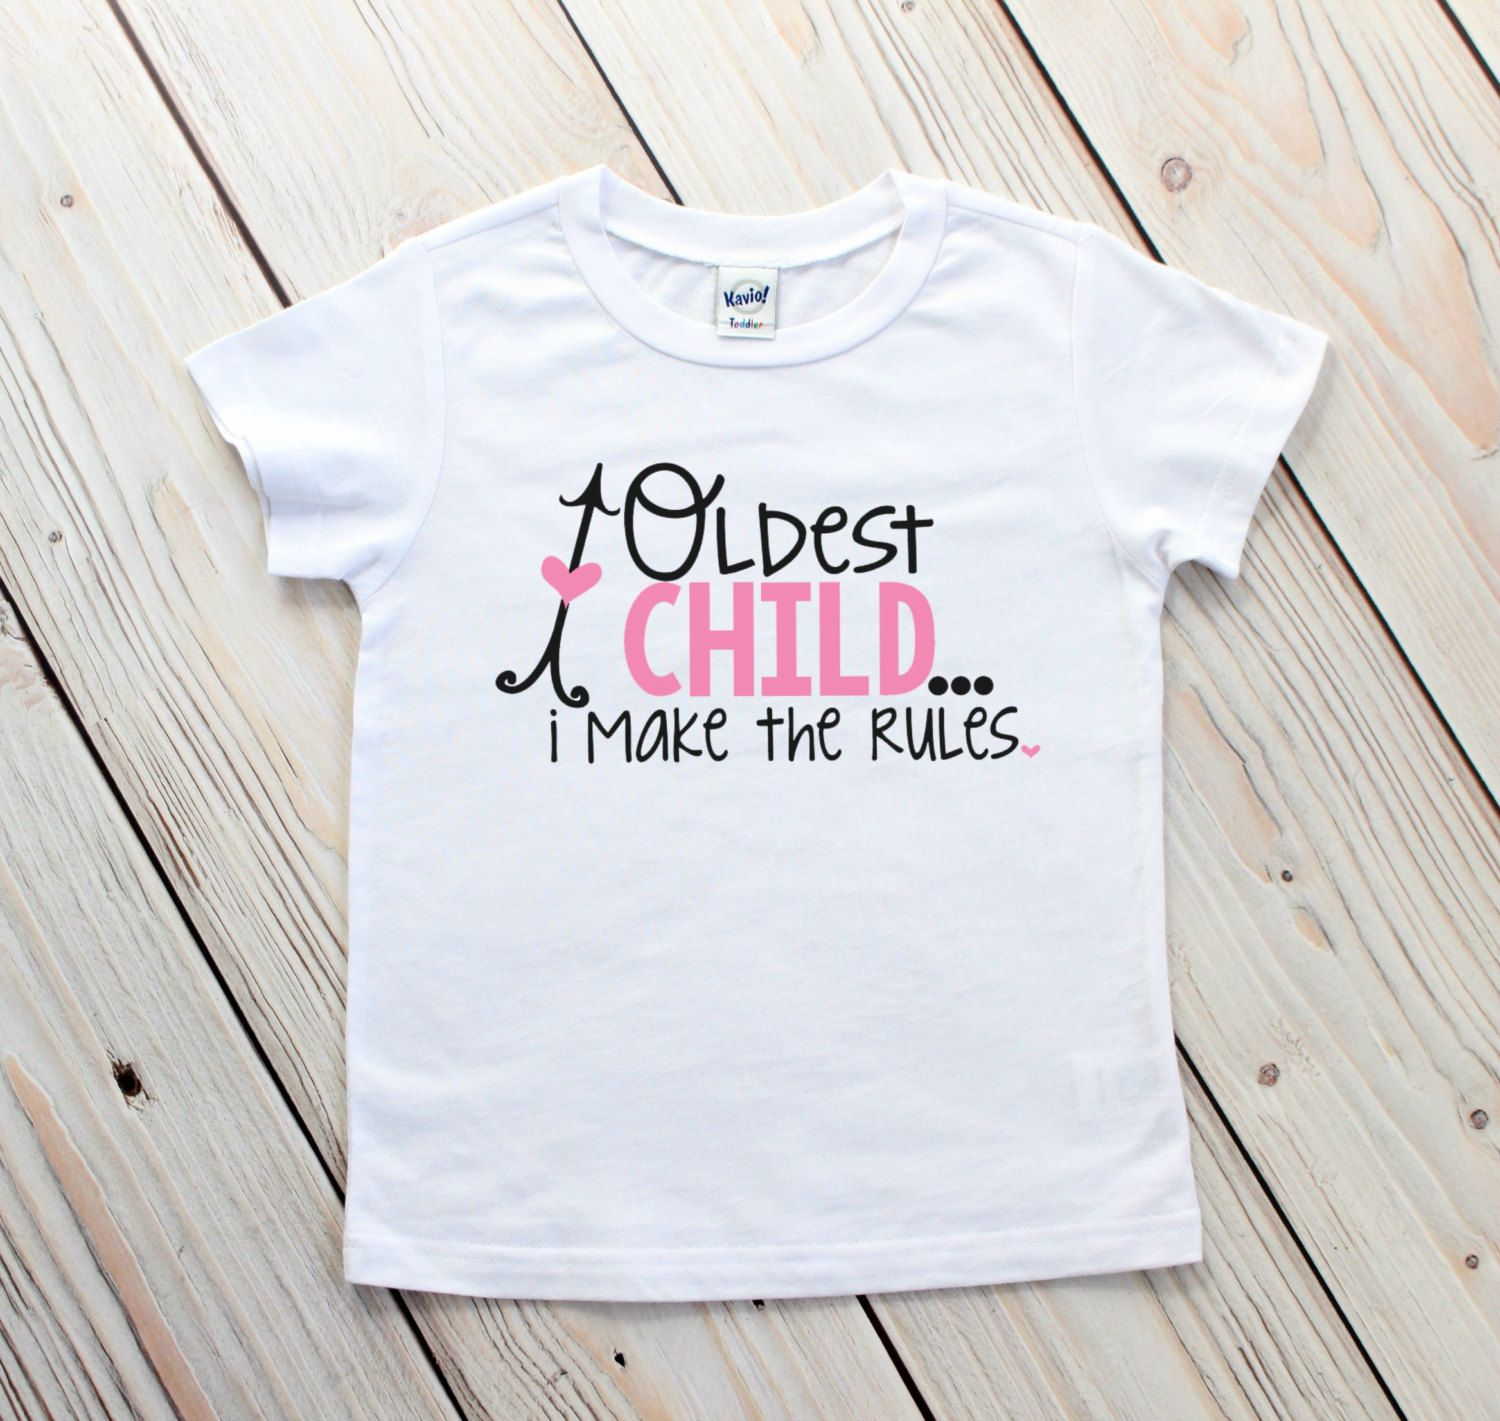 ba0c8b69b7 Oldest Middle Youngest - Birth Order Shirts - Oldest Child Shirt - Funny Sibling  Shirts - Sibling Outfits - Family Rules Shirts - Photo Prop by ...